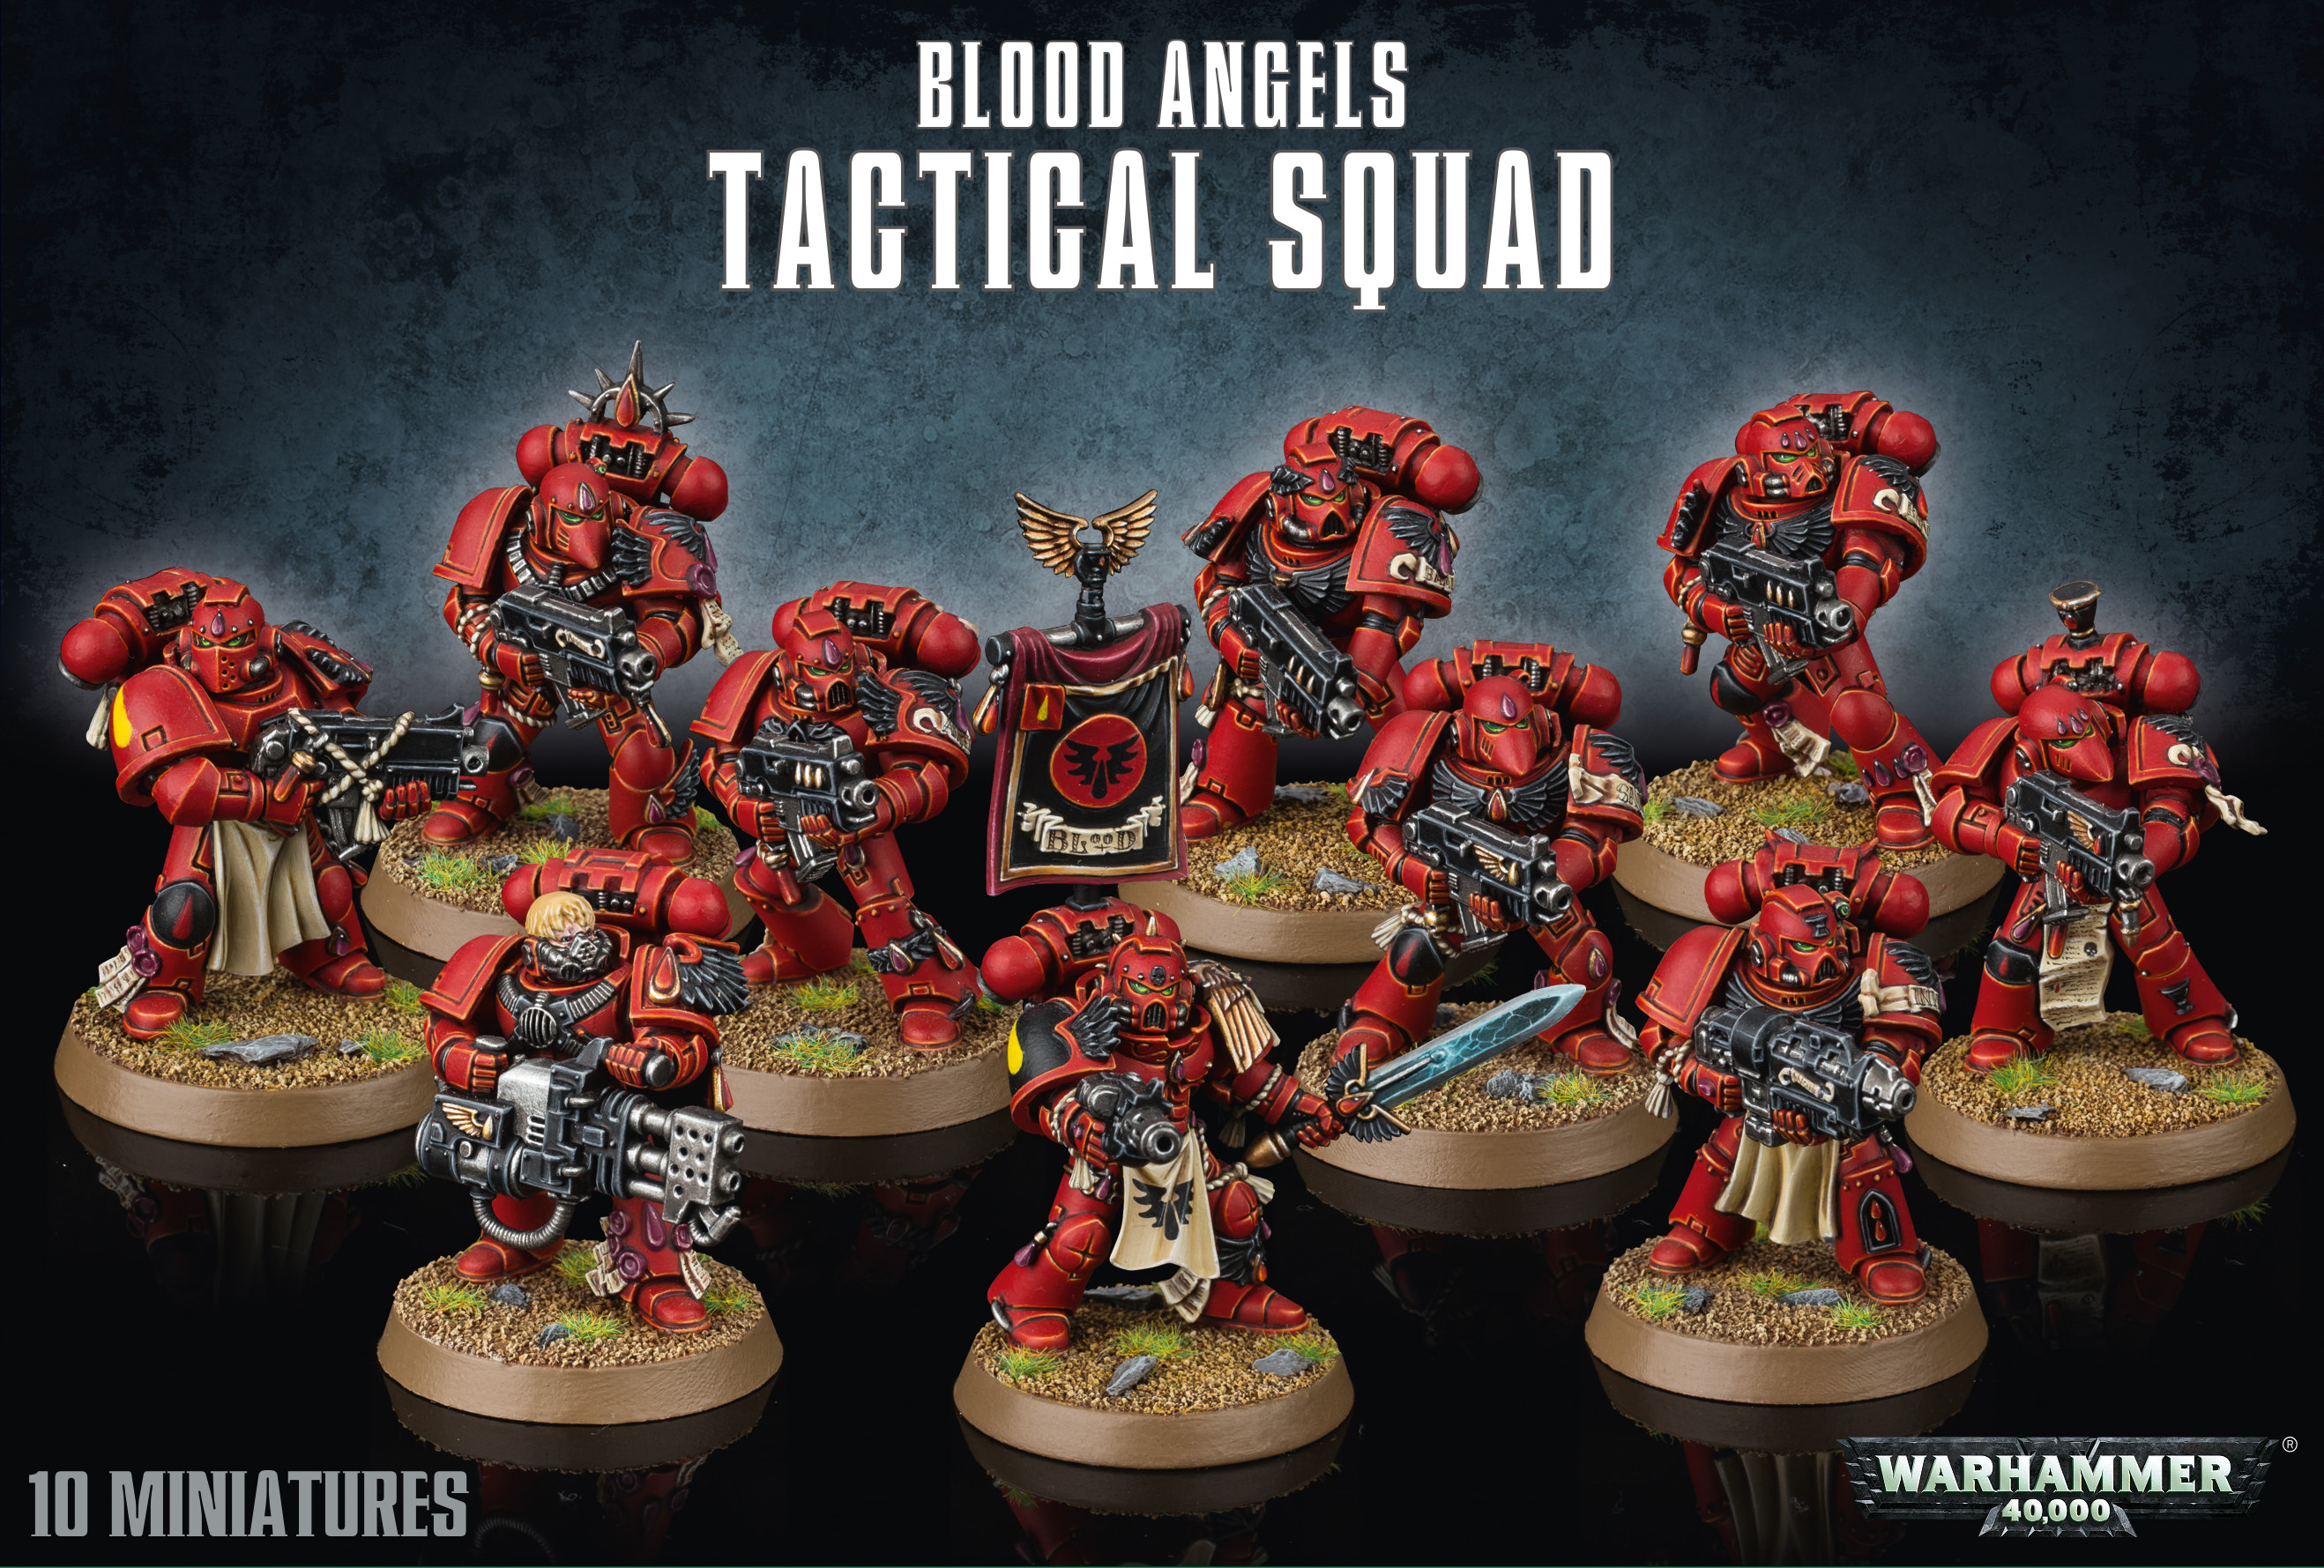 Warhammer 40,000: Blood Angels: Tactical Squad